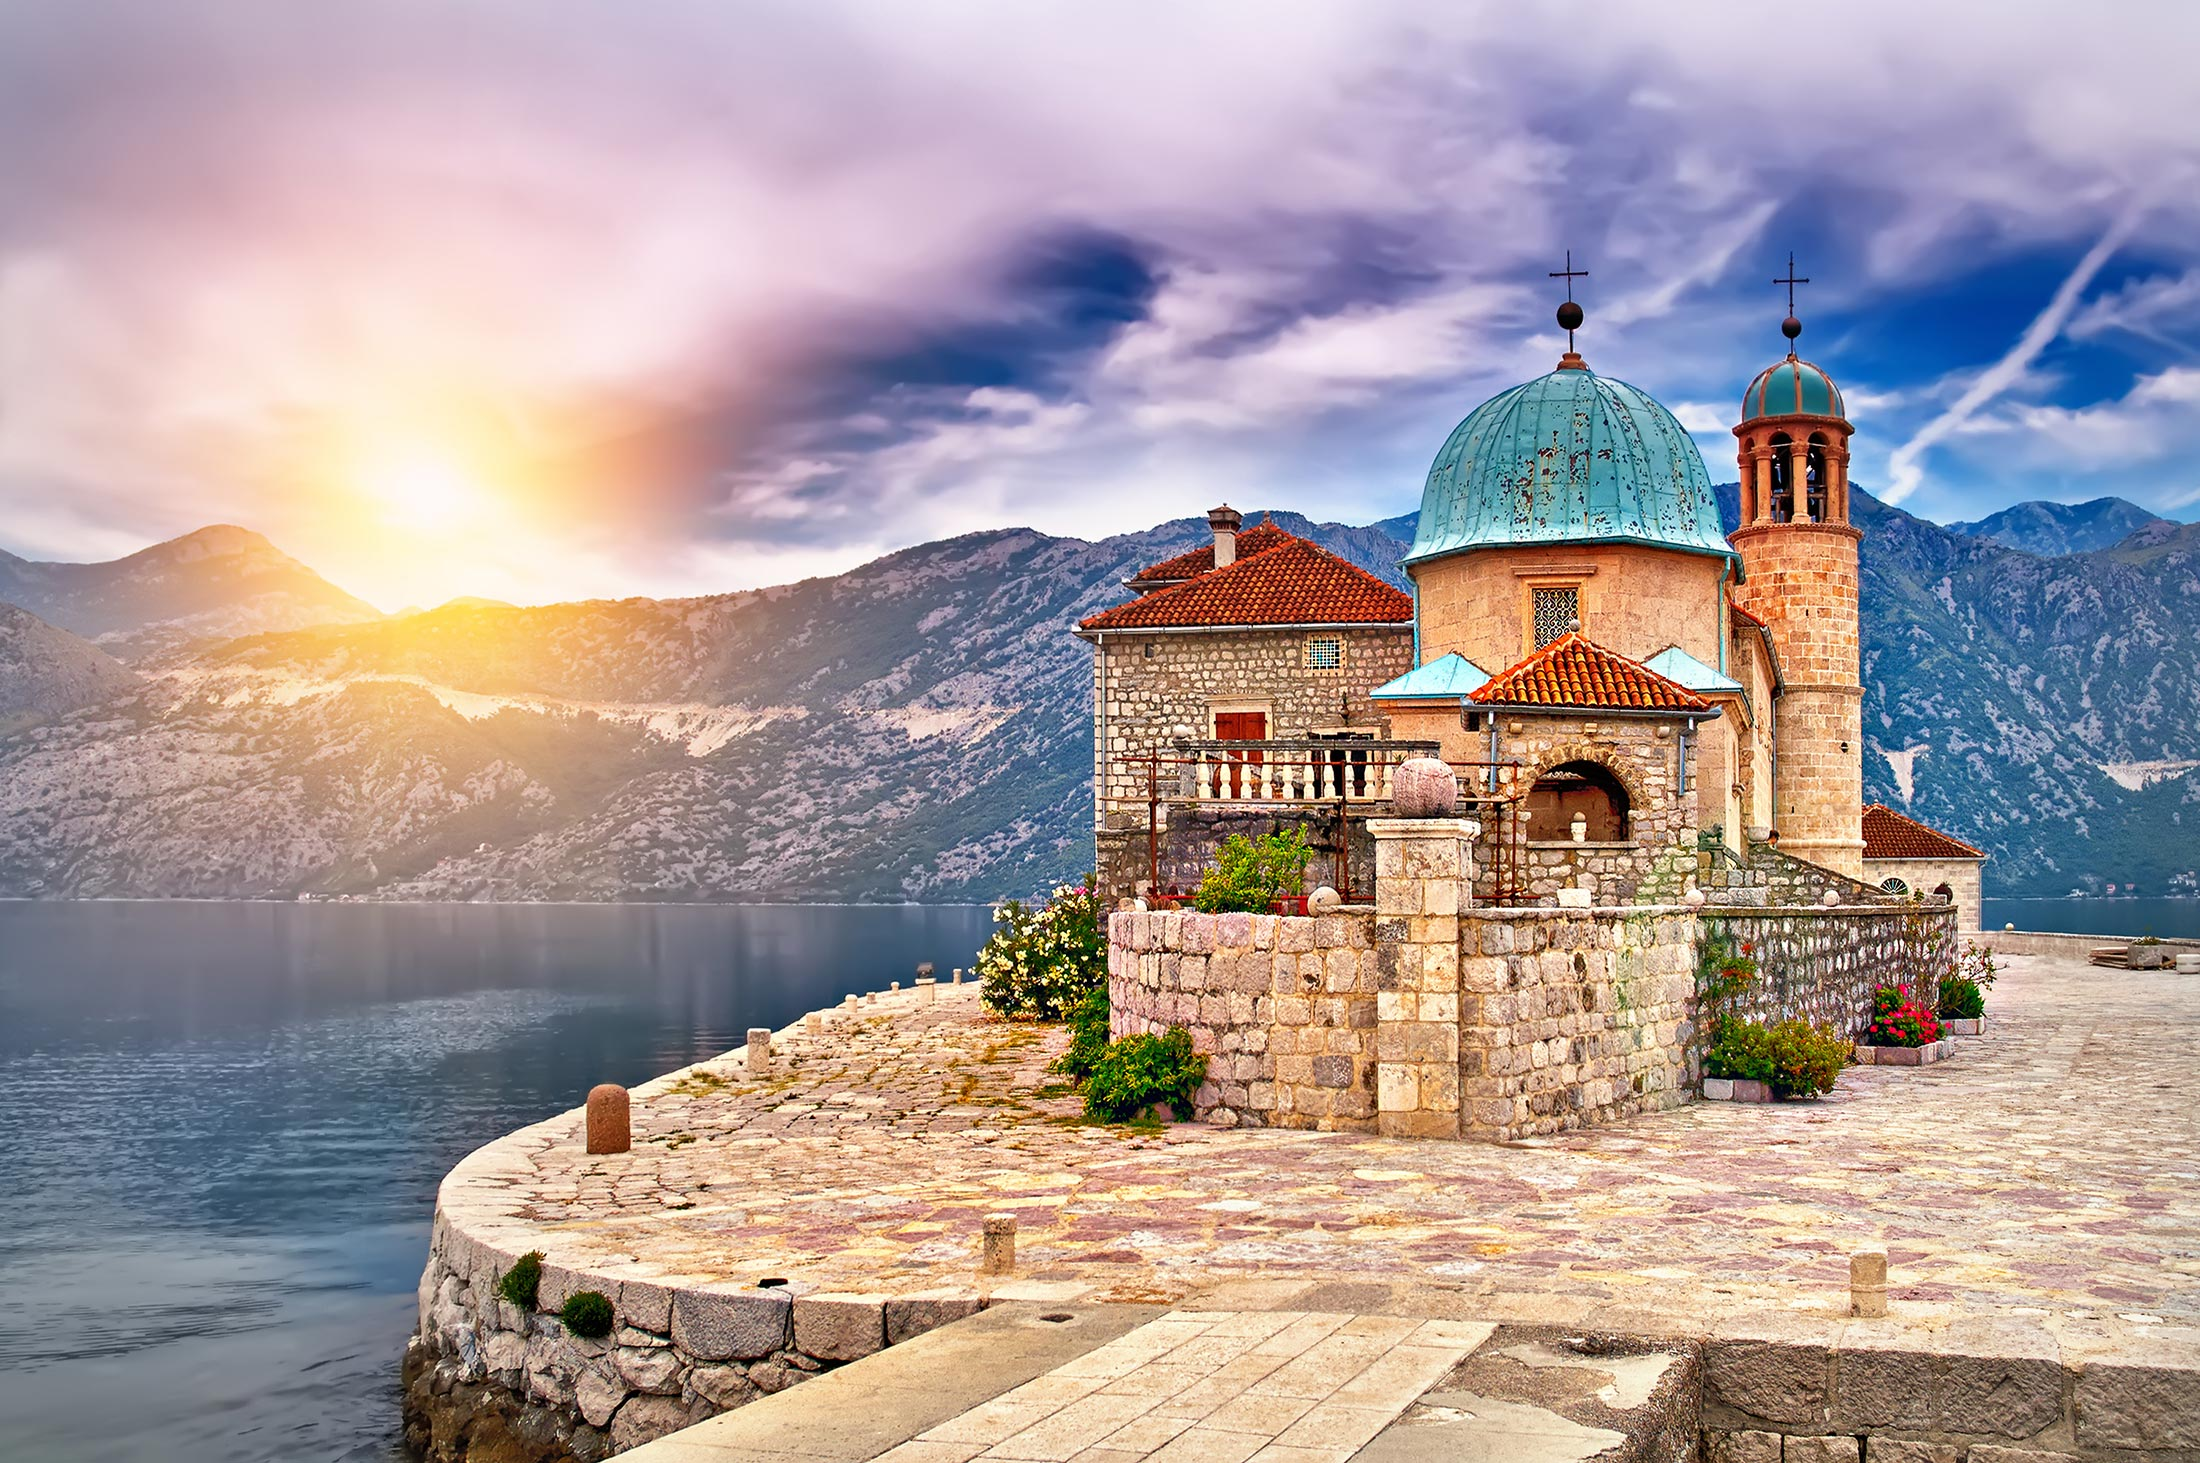 Castle-on-Island-on-the-lake-in-Montenegro